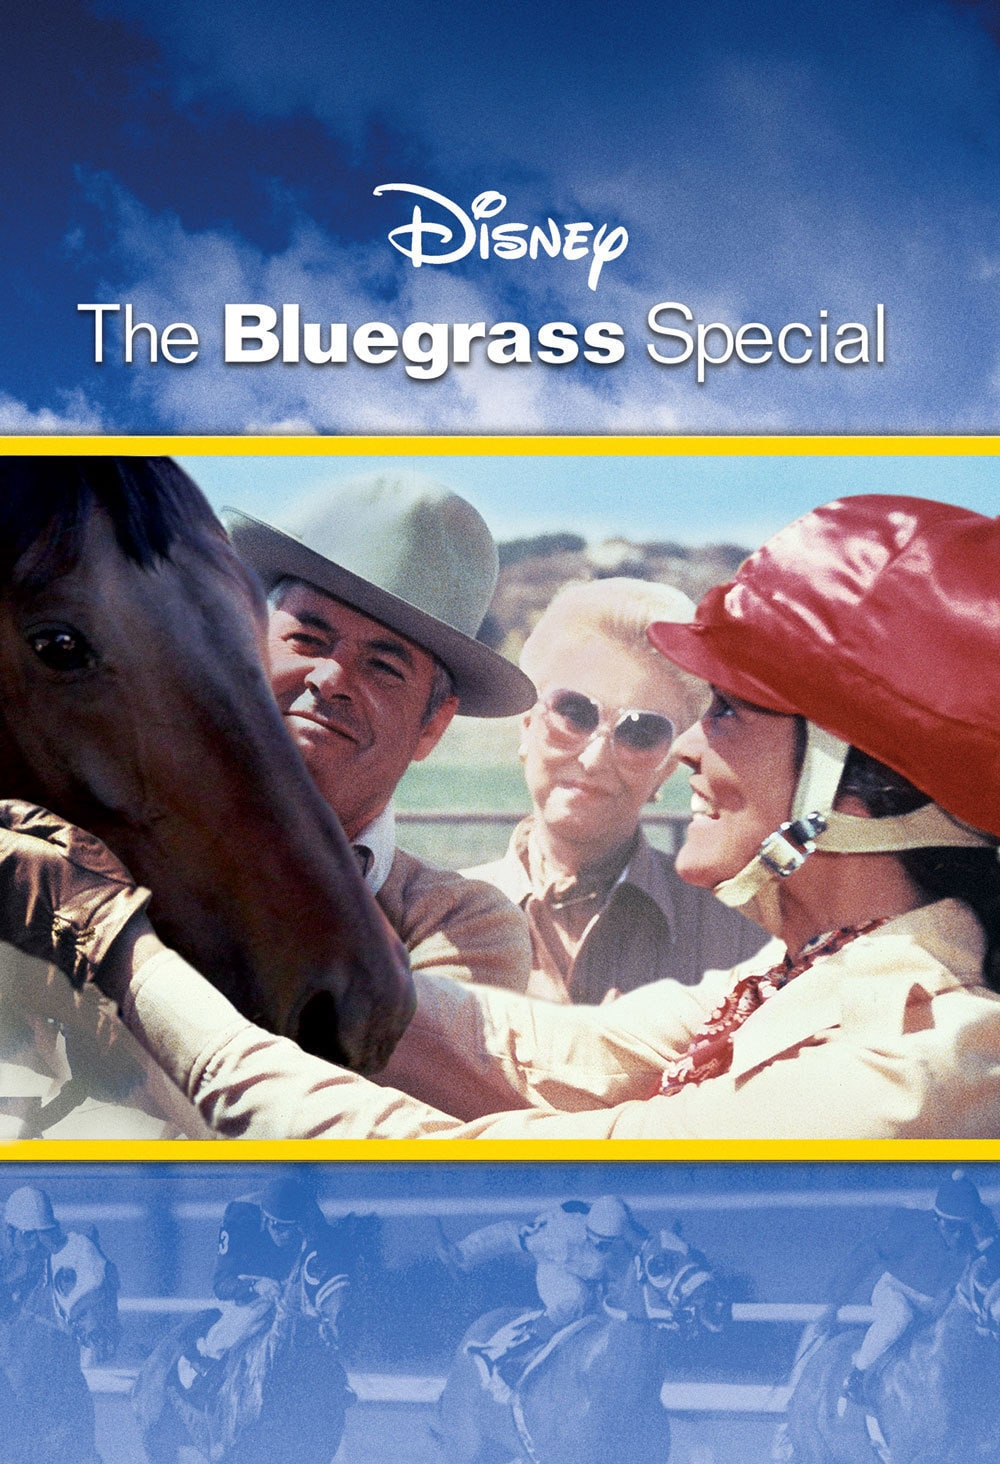 The Bluegrass Special